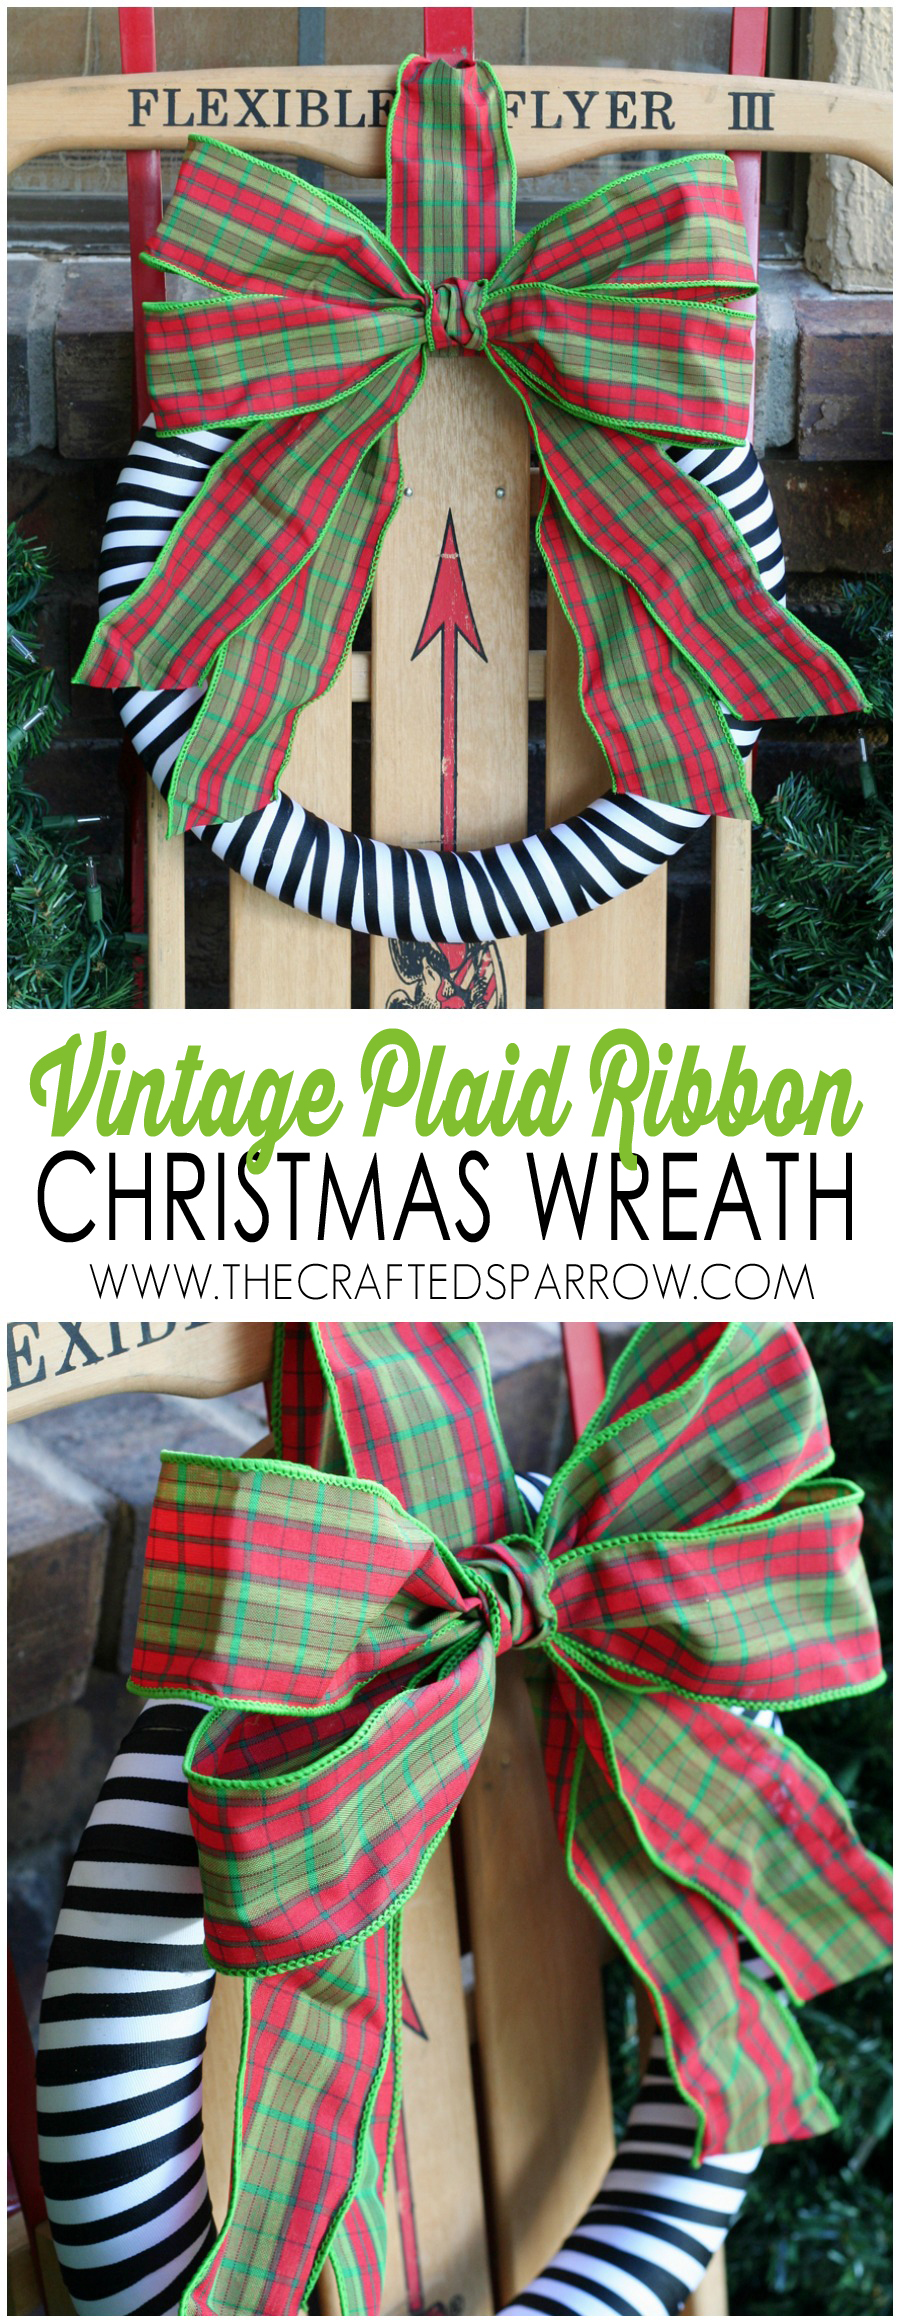 Vintage Plaid Ribbon Christmas Wreath